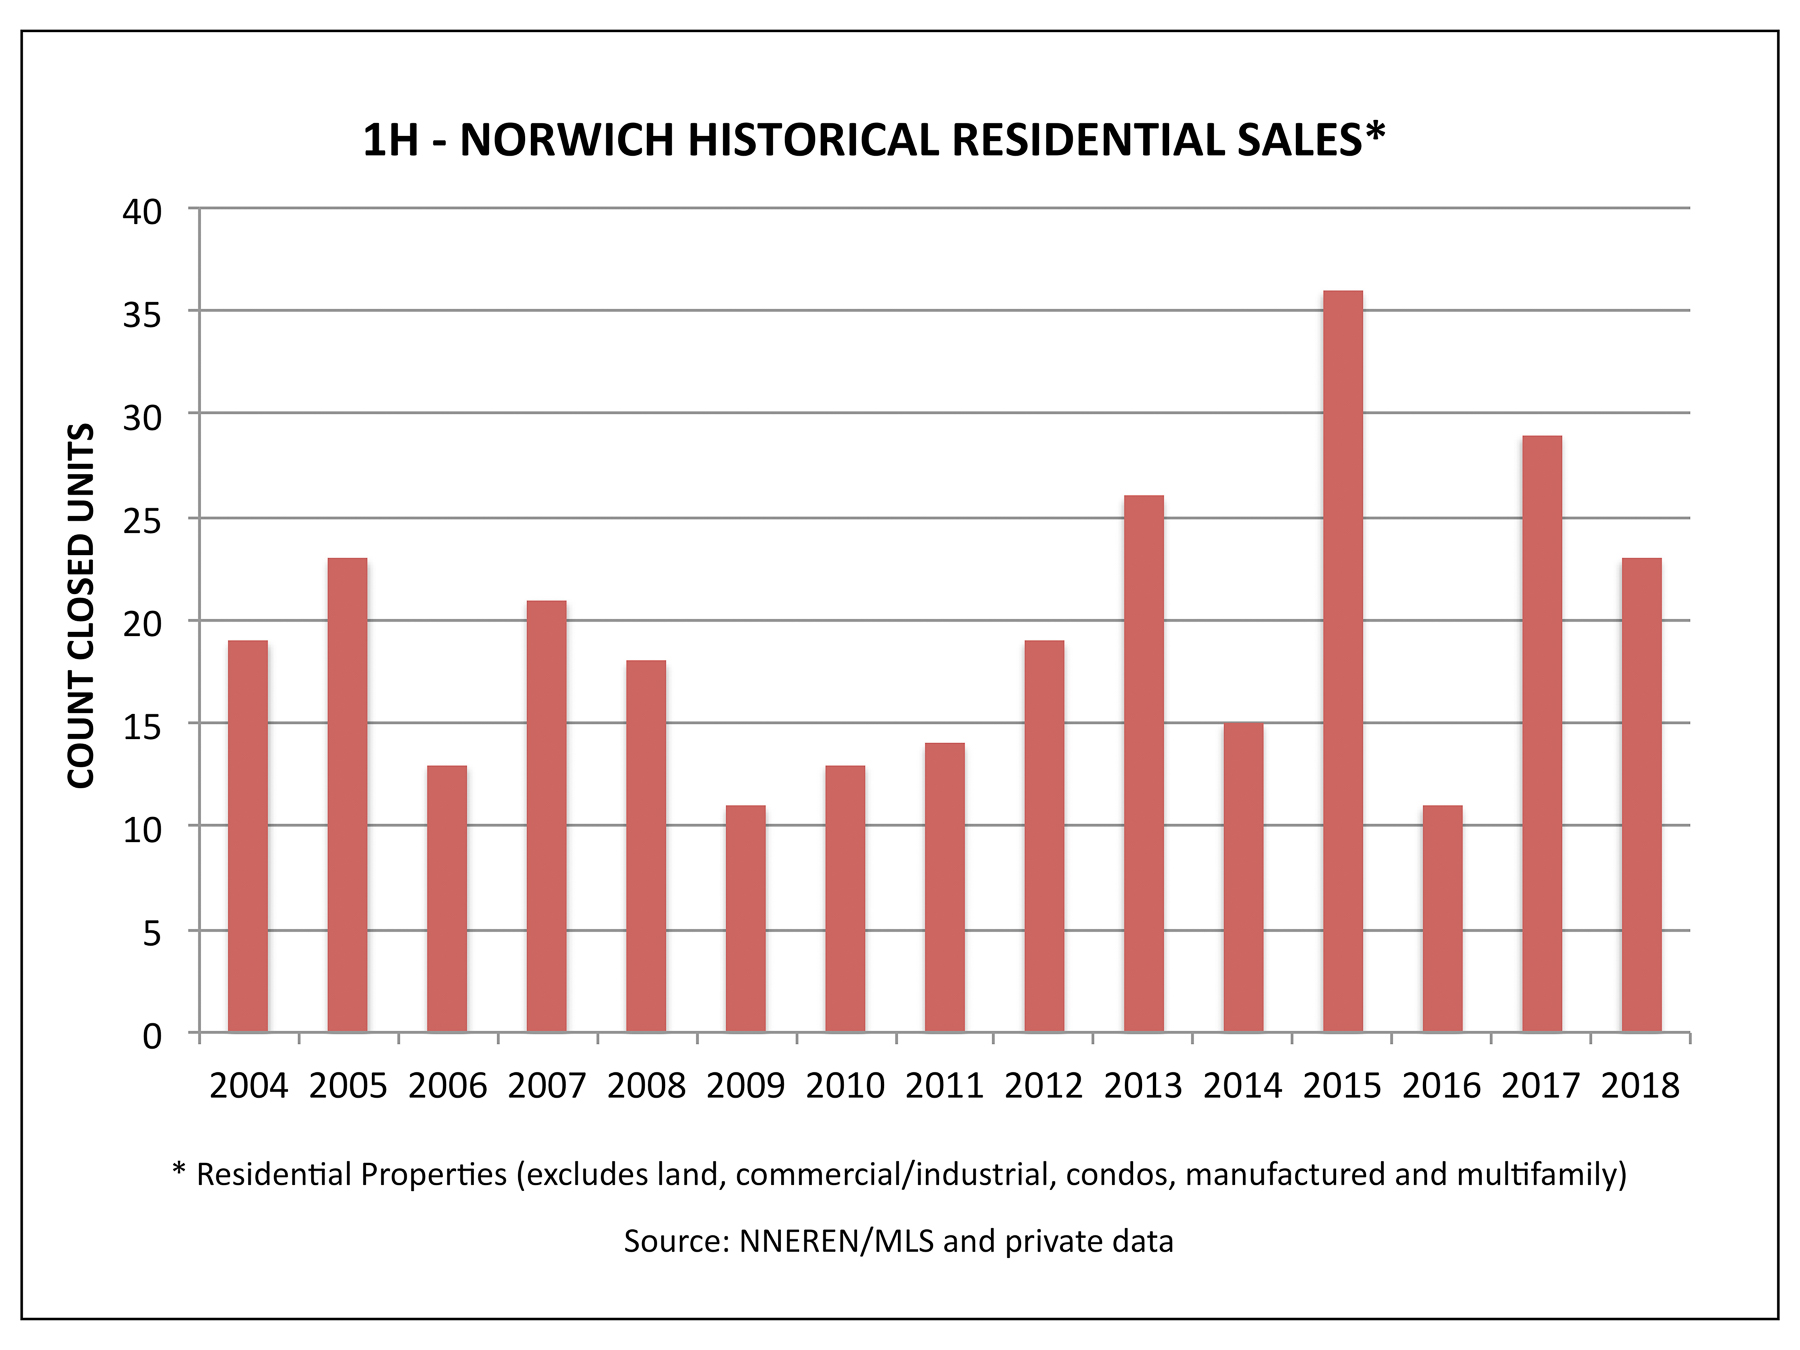 Norwich VT Real Estate Market Report - Historical Sales in the First Half